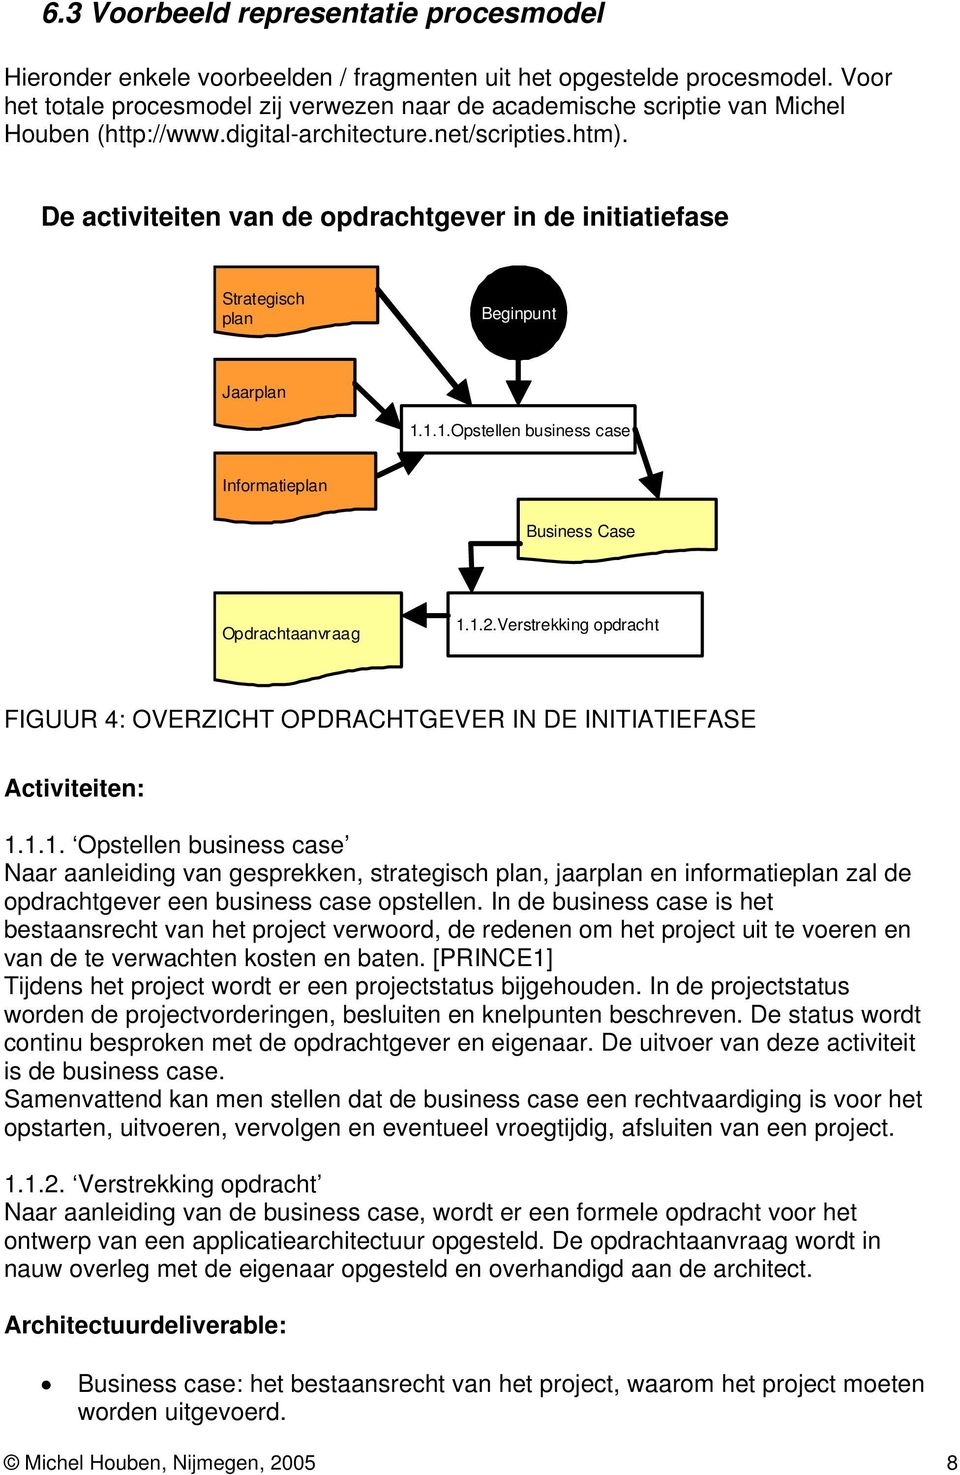 De activiteiten van de opdrachtgever in de initiatiefase Strategisch plan Beginpunt Jaarplan 1.1.1.Opstellen business case Informatieplan Business Case Opdrachtaanvraag 1.1.2.